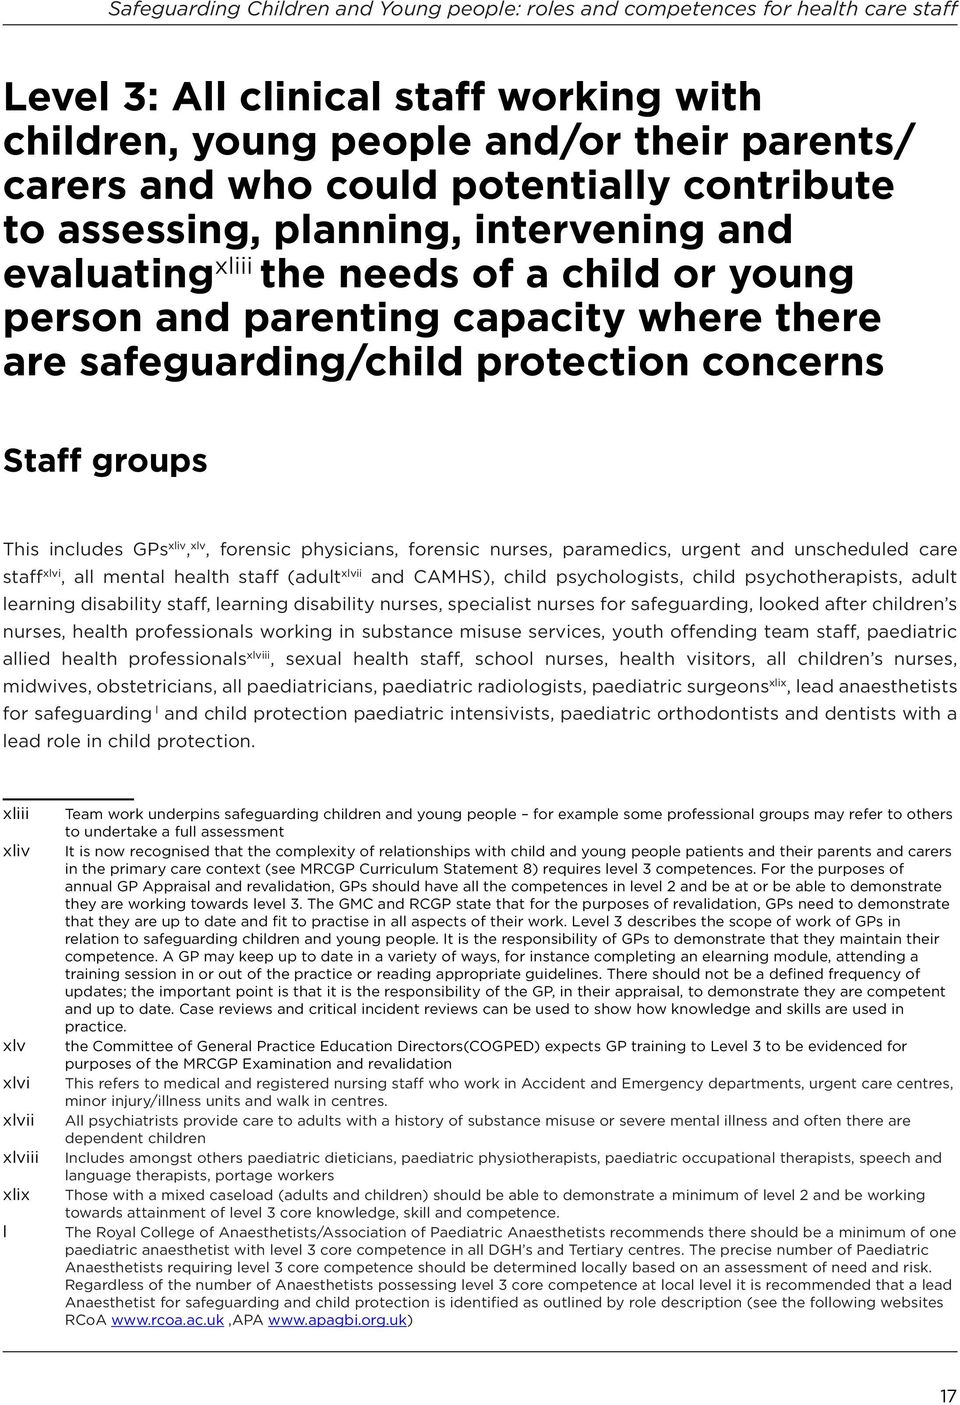 urgent and unscheduled care staff xlvi, all mental health staff (adult xlvii and CAMHS), child psychologists, child psychotherapists, adult learning disability staff, learning disability nurses,